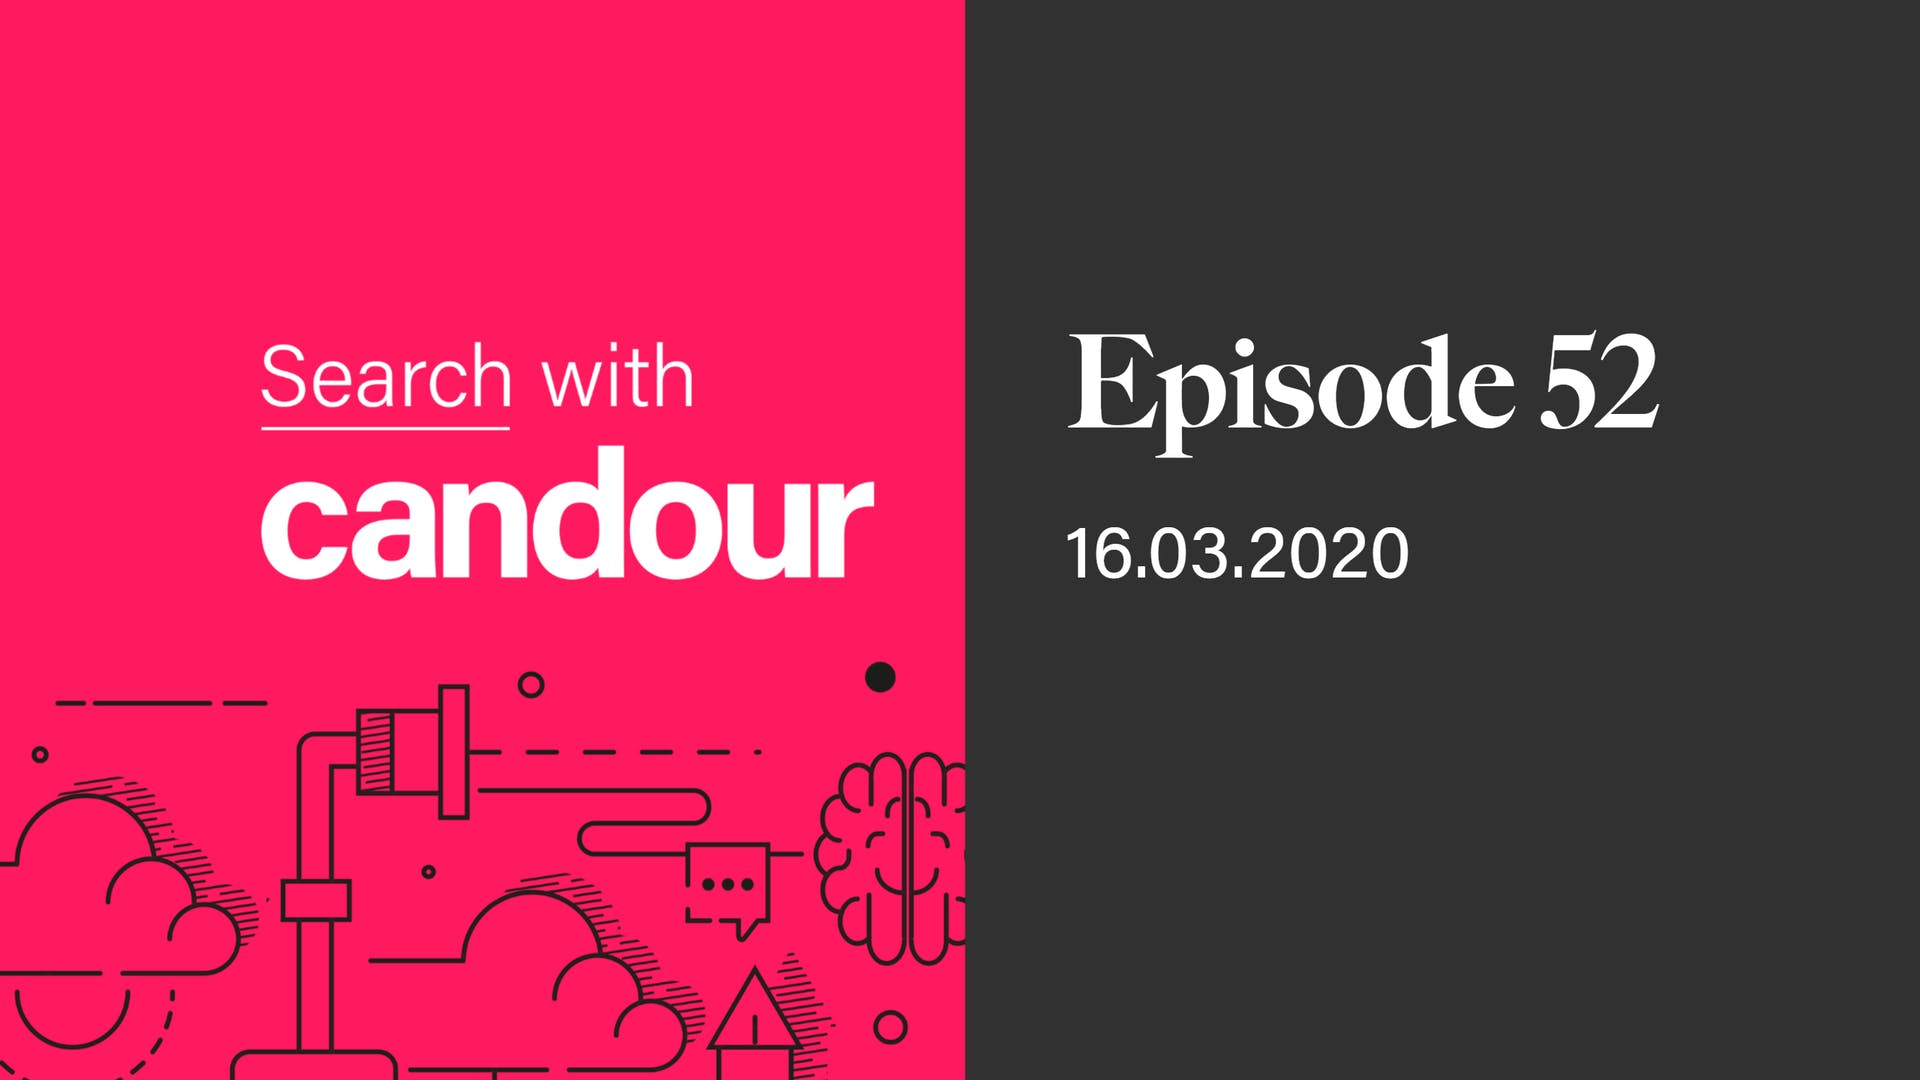 Episode 52 - Search with Candour